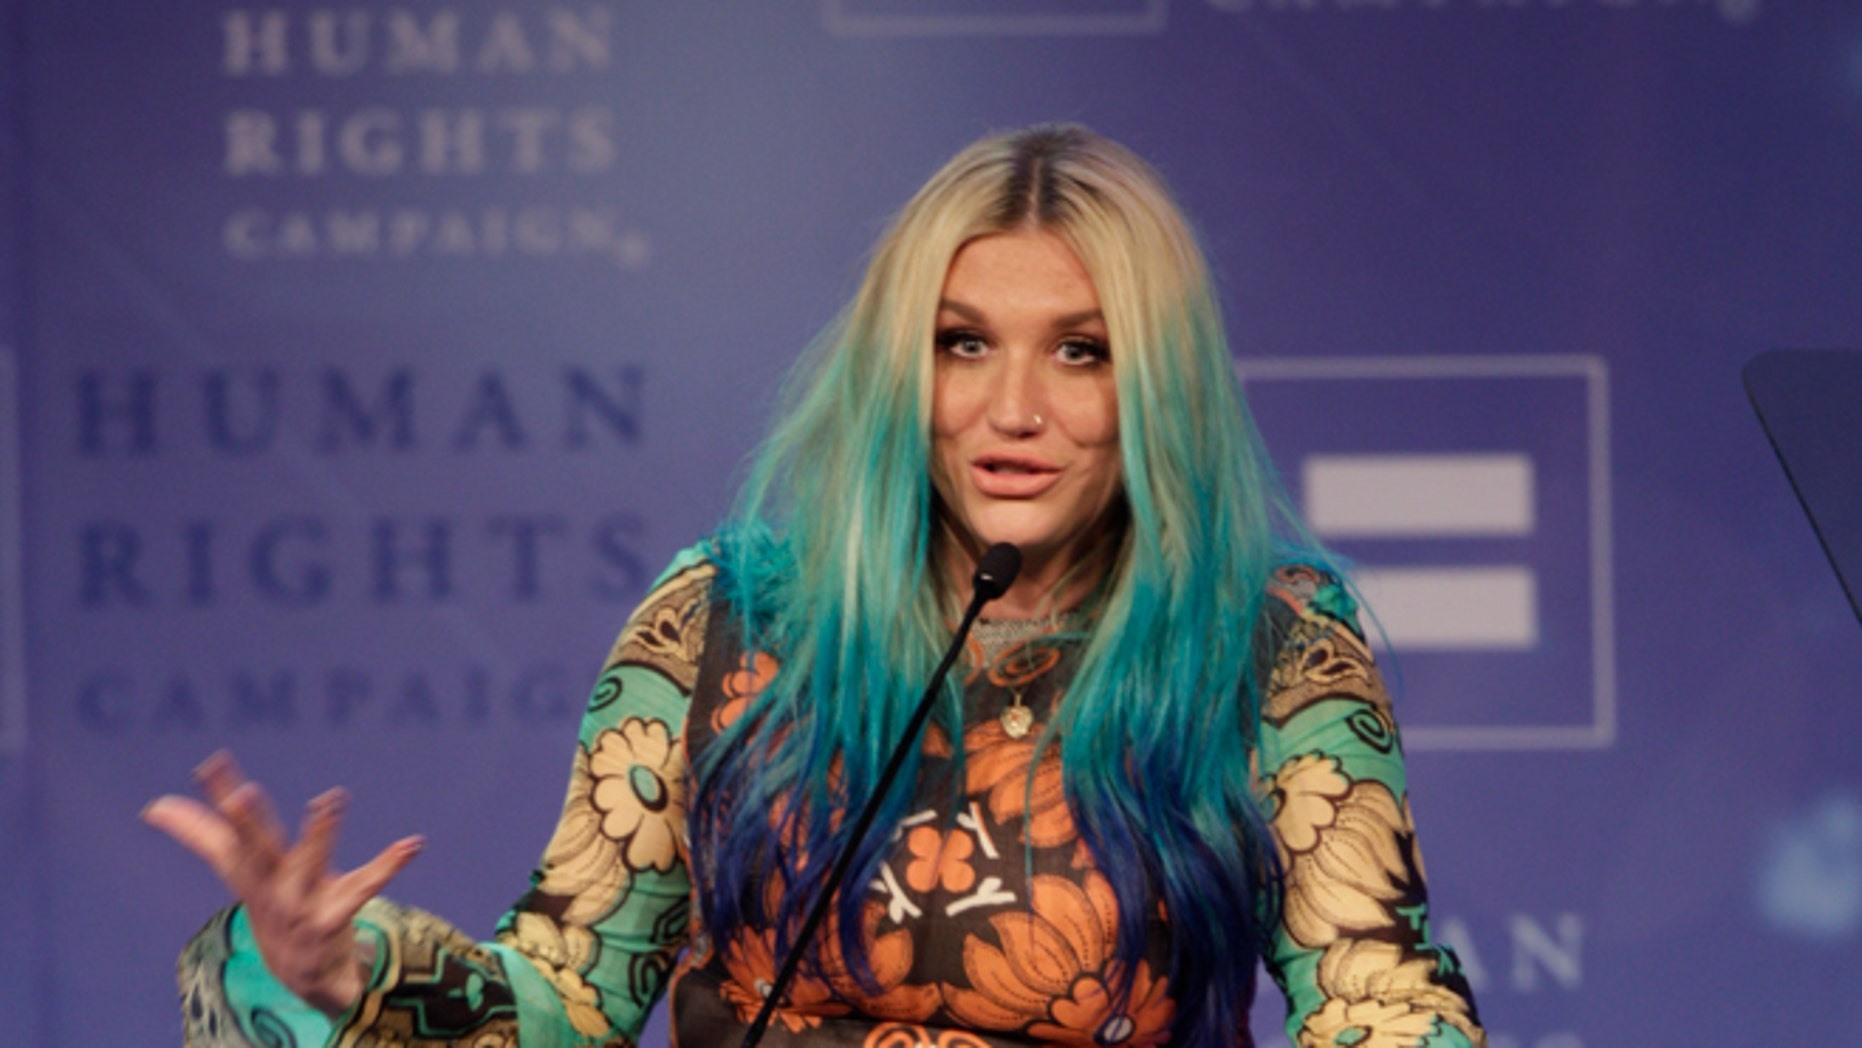 March 5, 2016. Kesha, recipient of the Visibility award, speaks at the 21st Annual HRC Nashville Equality Dinner at the Renaissance Hotel in Nashville.